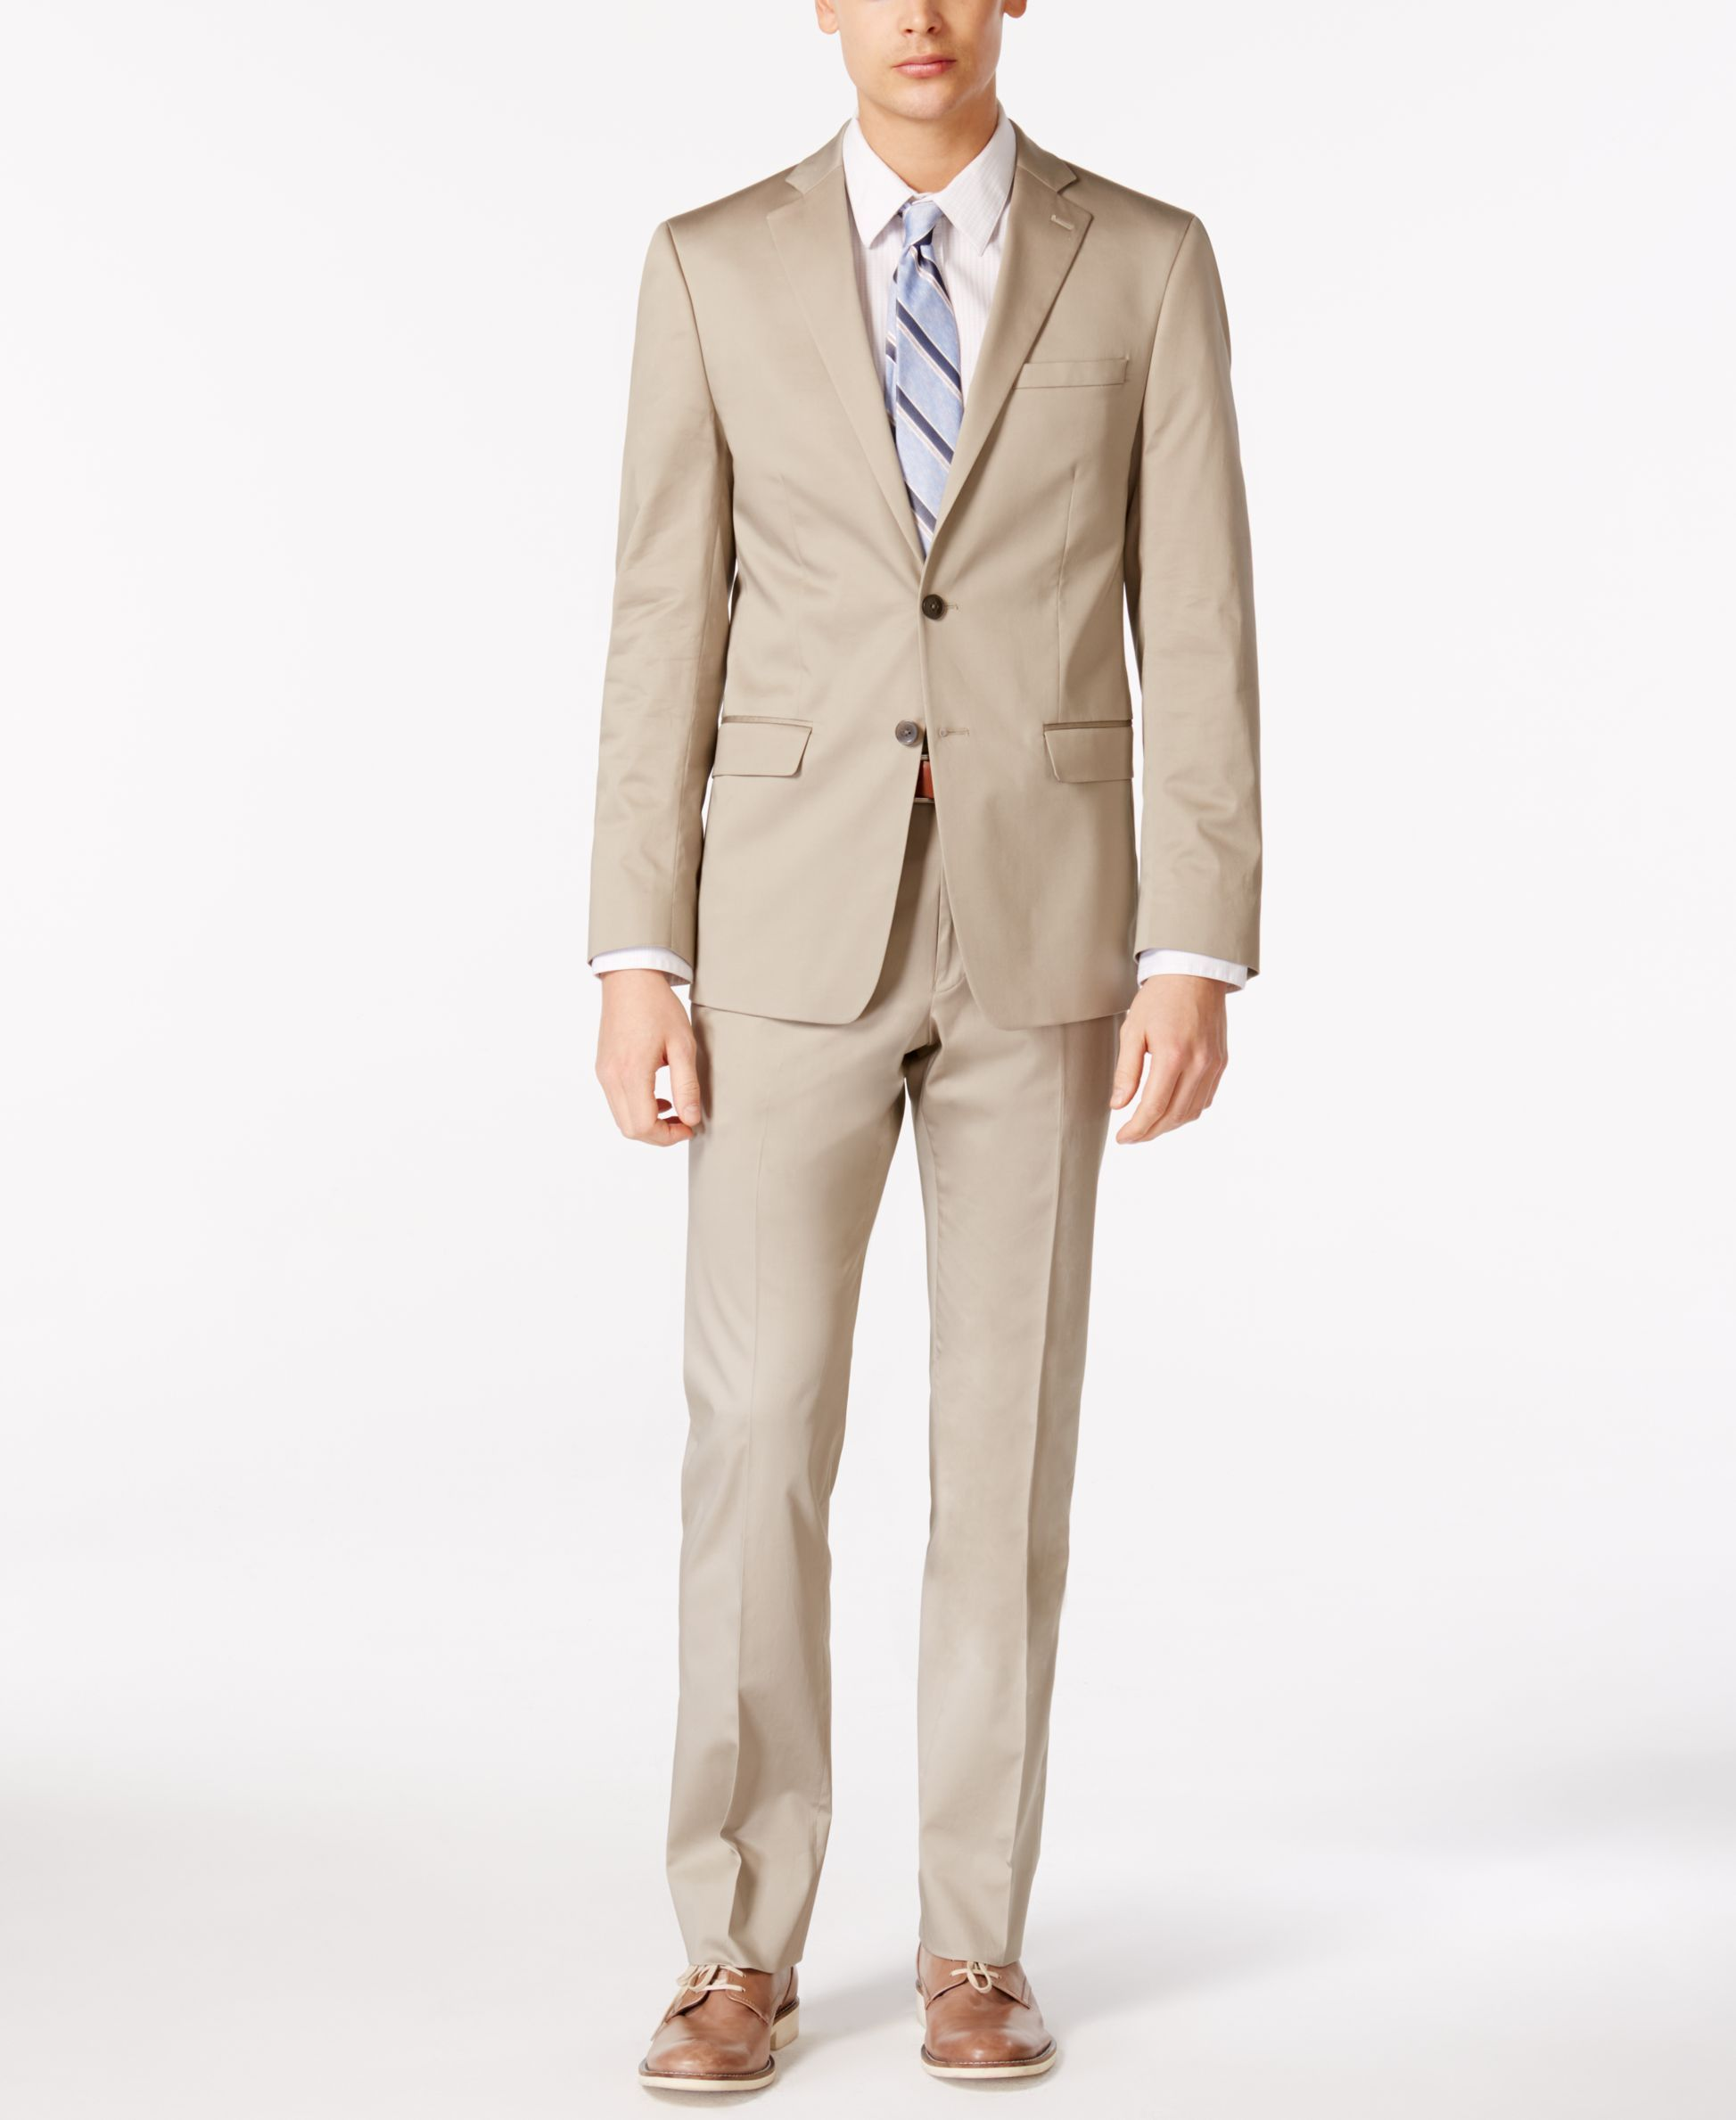 9eb247d0a2c6 Calvin Klein X-Fit Solid Tan Extra Slim-Fit Suit-I'm too brolic LOL but  seems like a nice cut